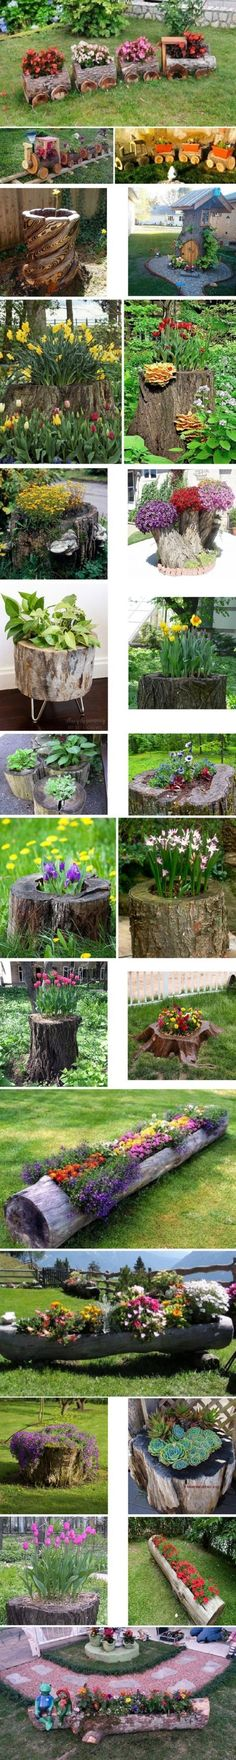 24 Tree Stumps Turned Into Beautiful Flower Planters | http://WoodworkerZ.com